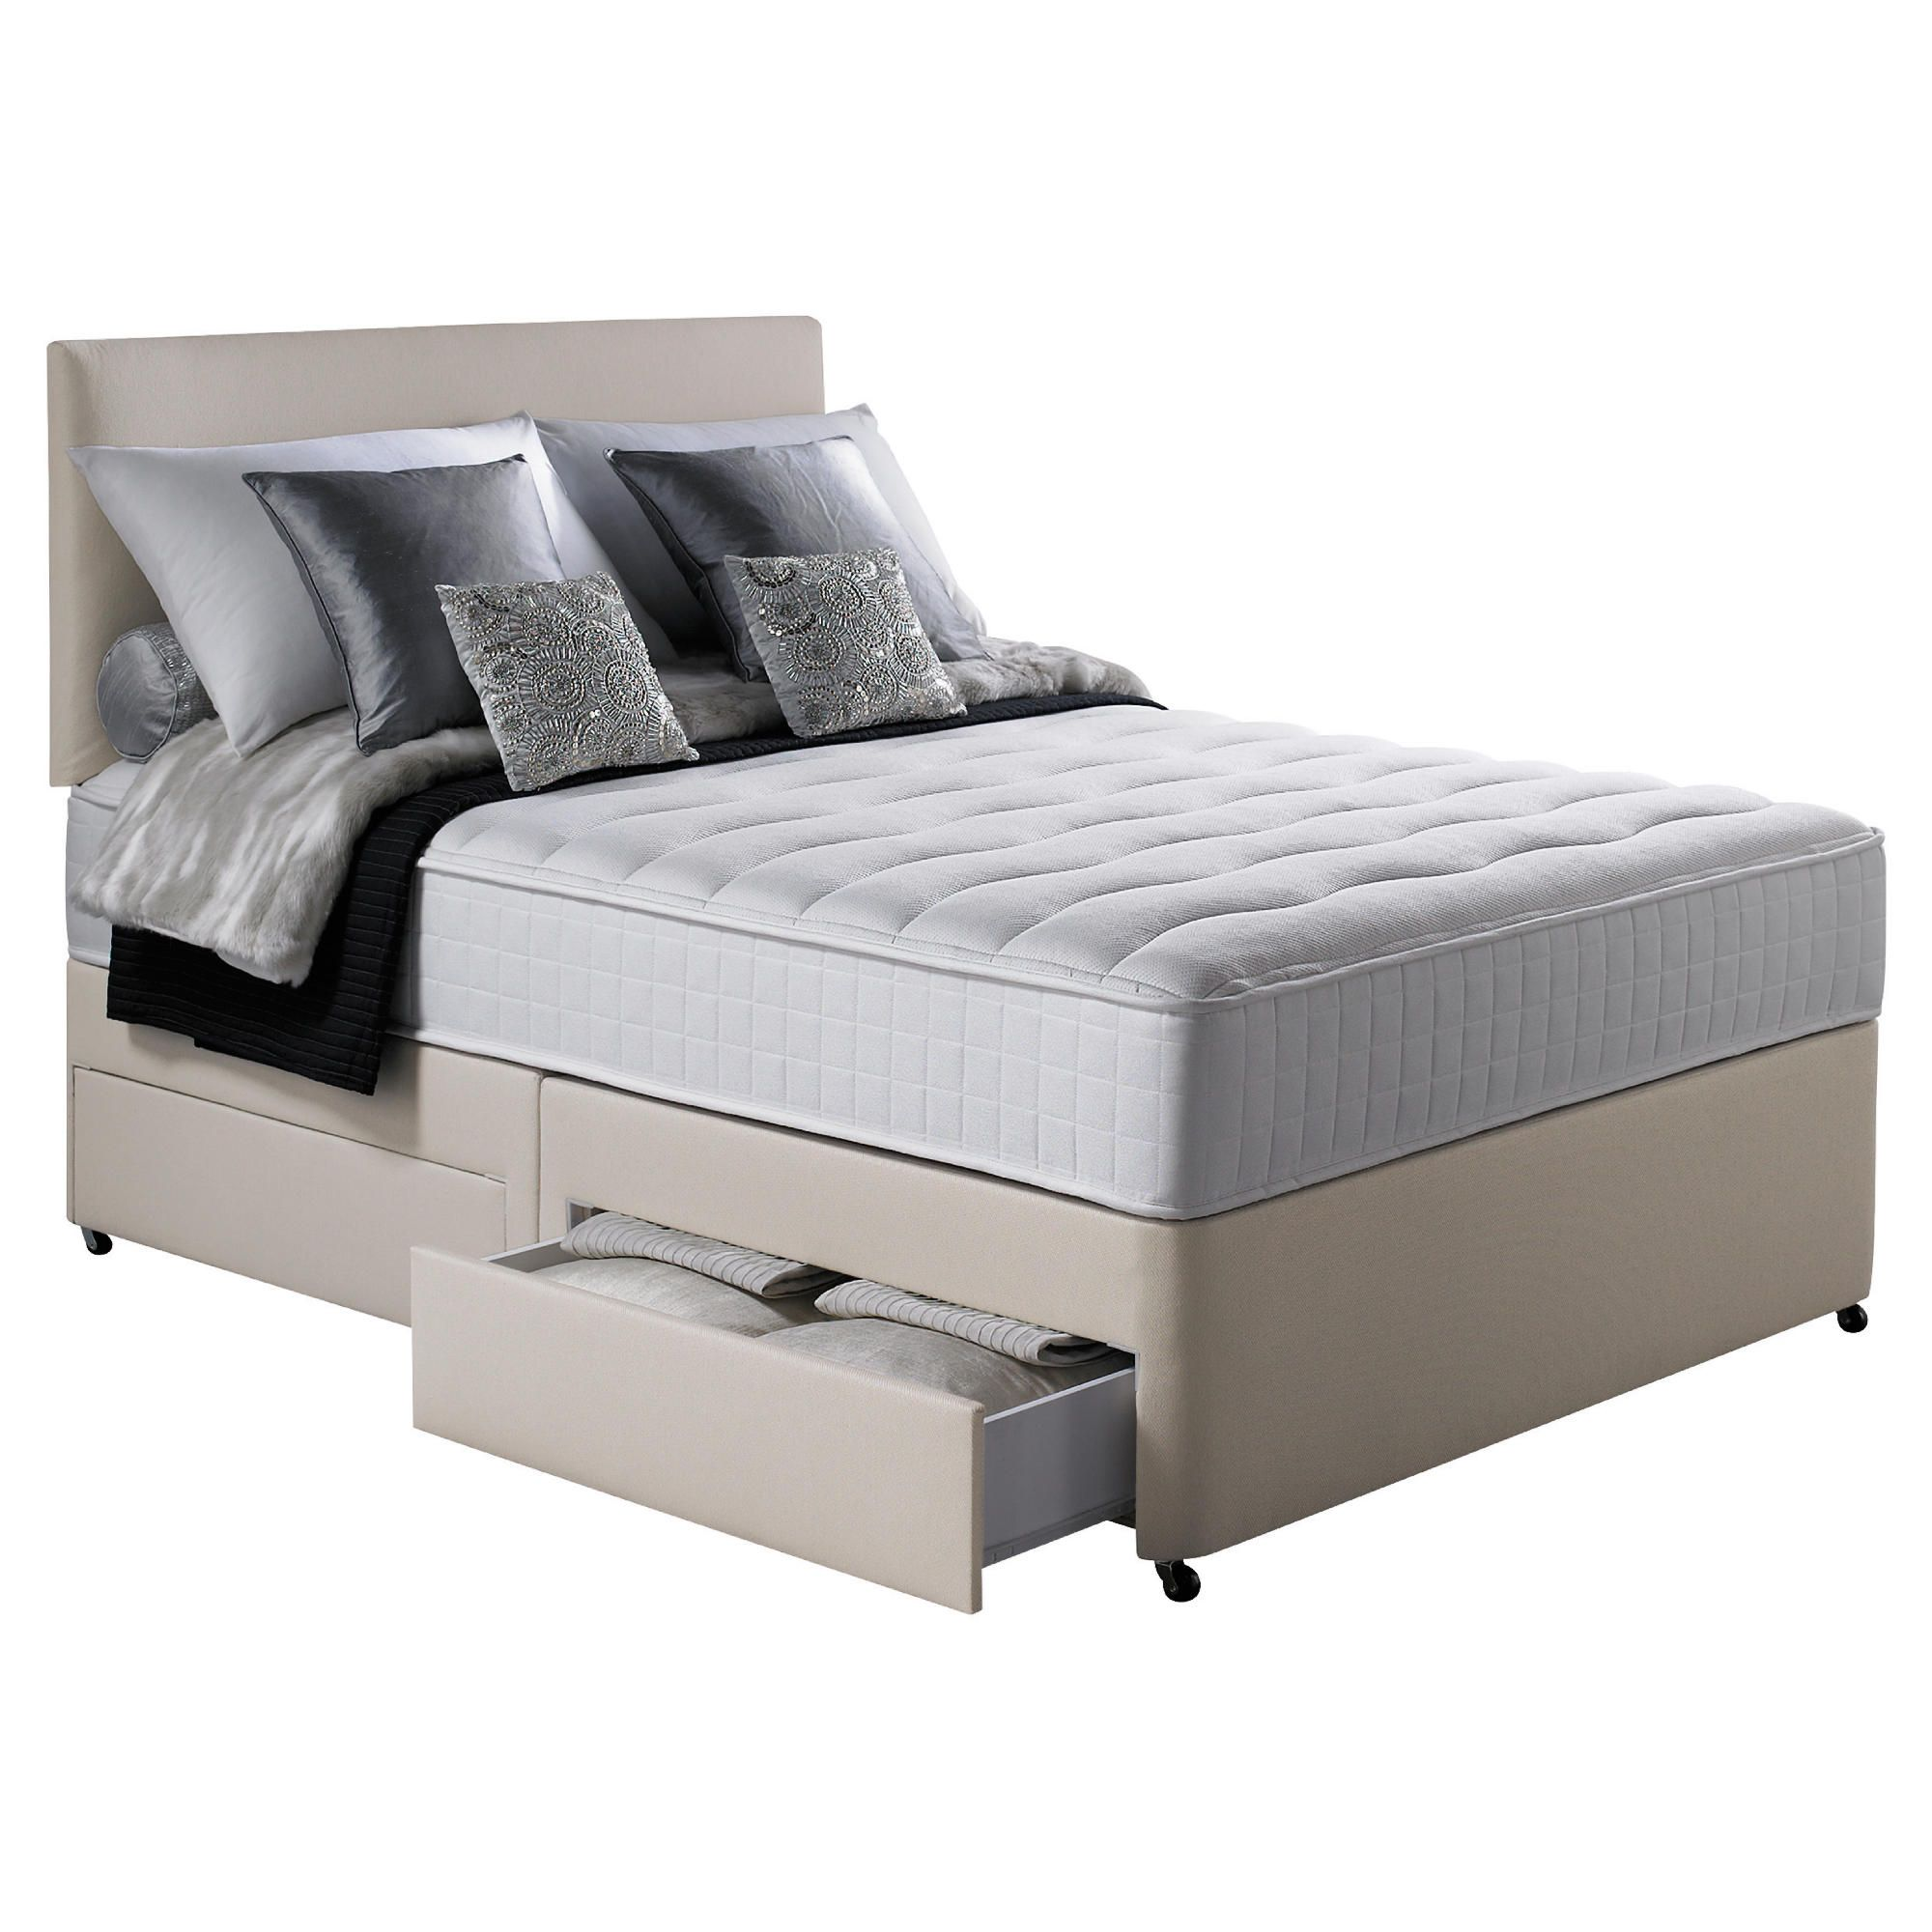 Myshop Divan double bed with mattress